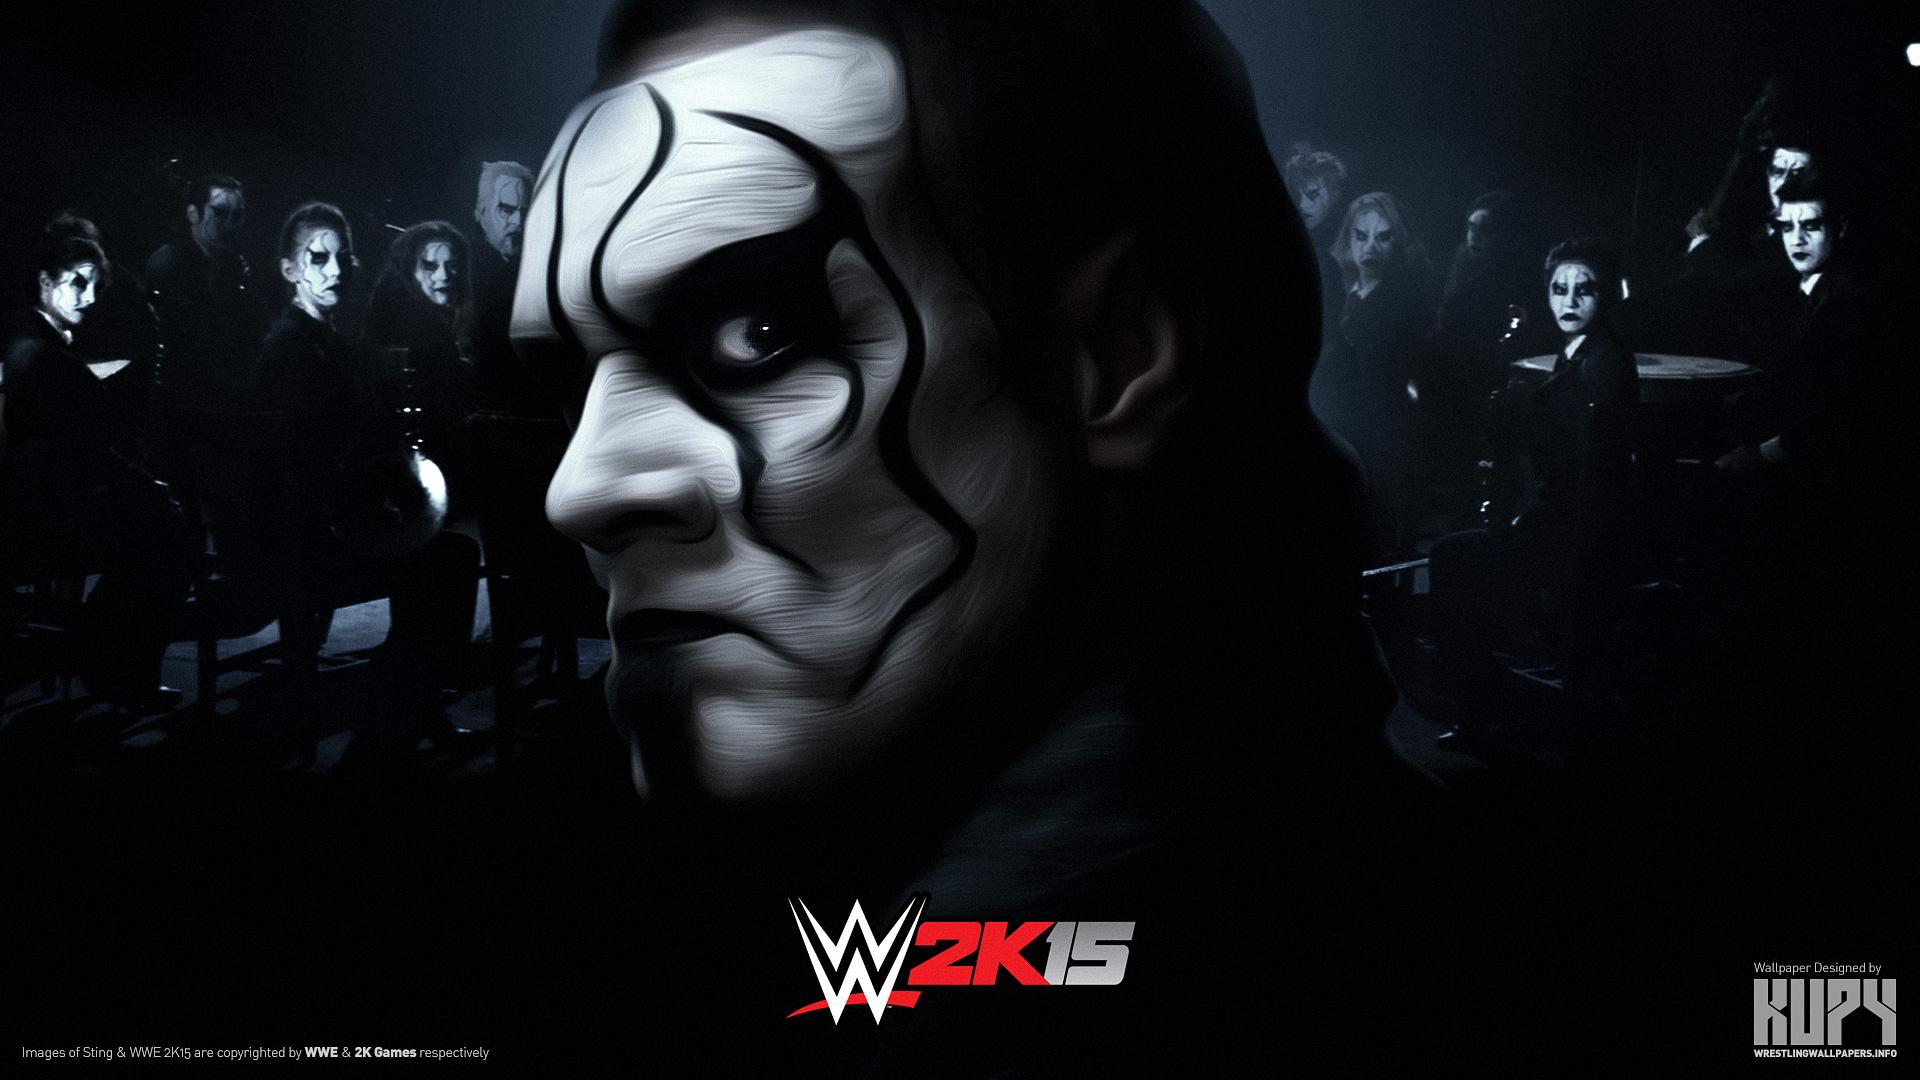 wallpapers - wwe 2k15 images